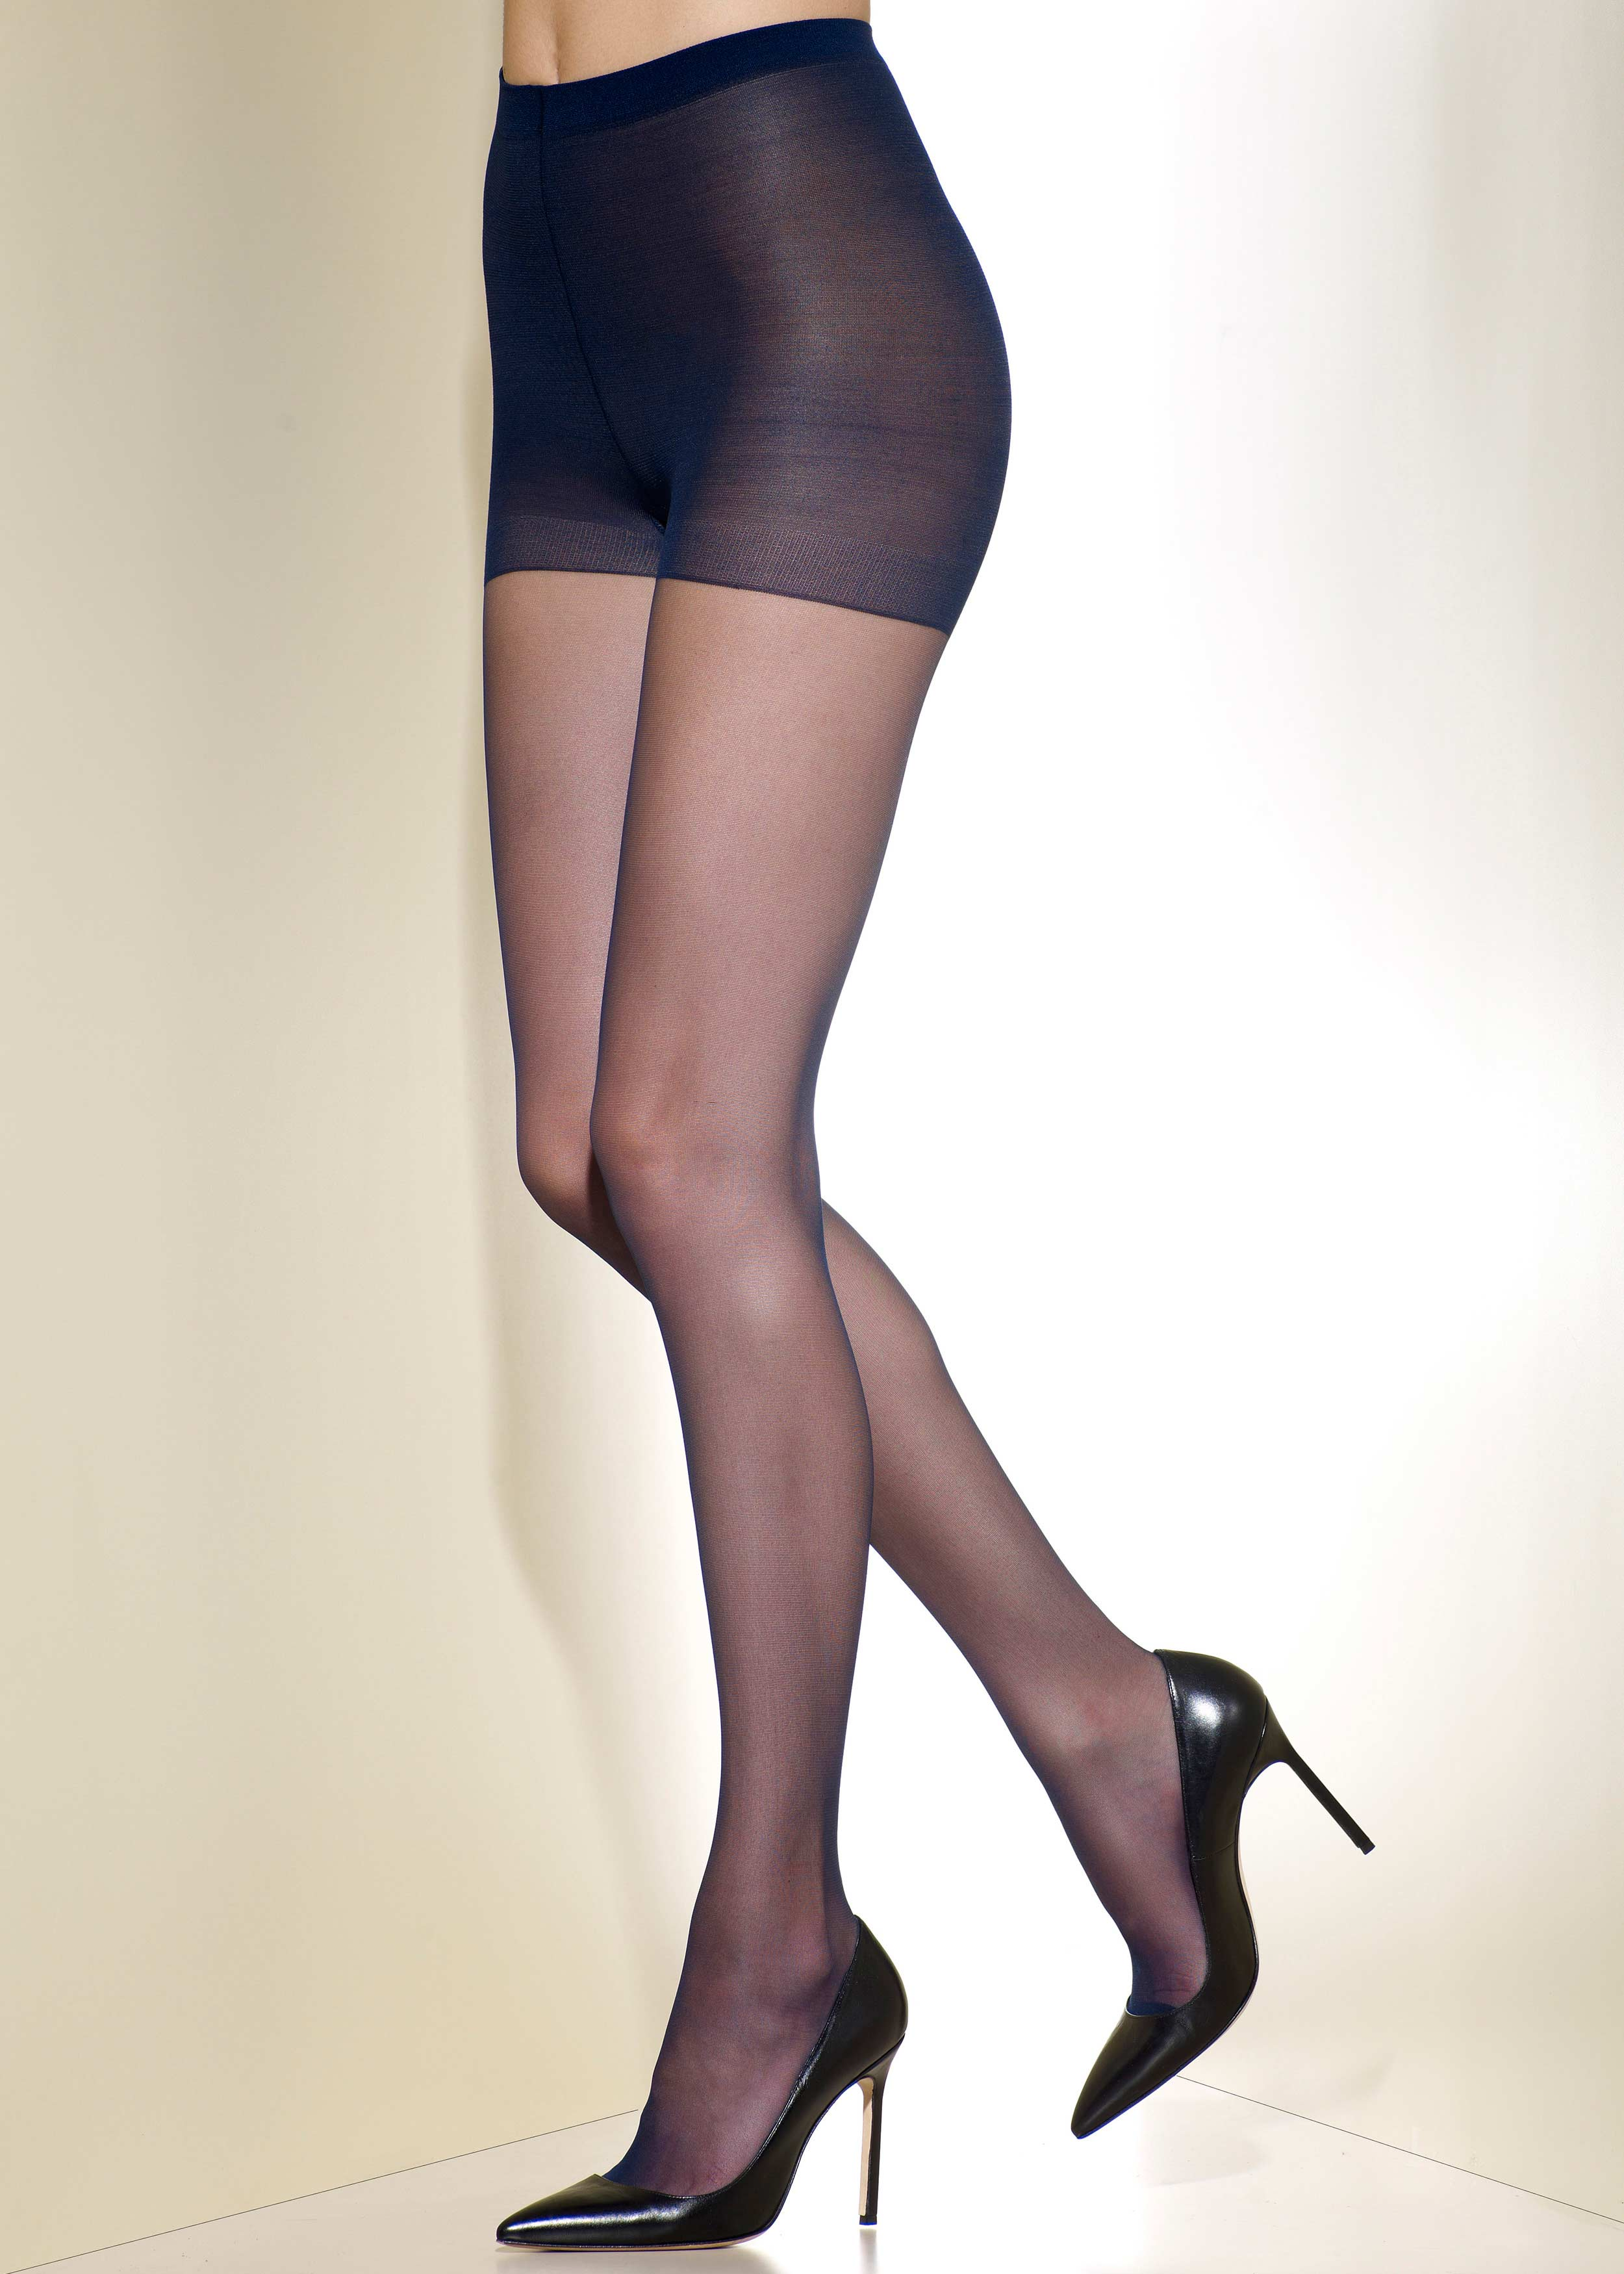 0c9f0b5a153 Silkies Categories. CONTROL TOP · SHEERS · TIGHTS